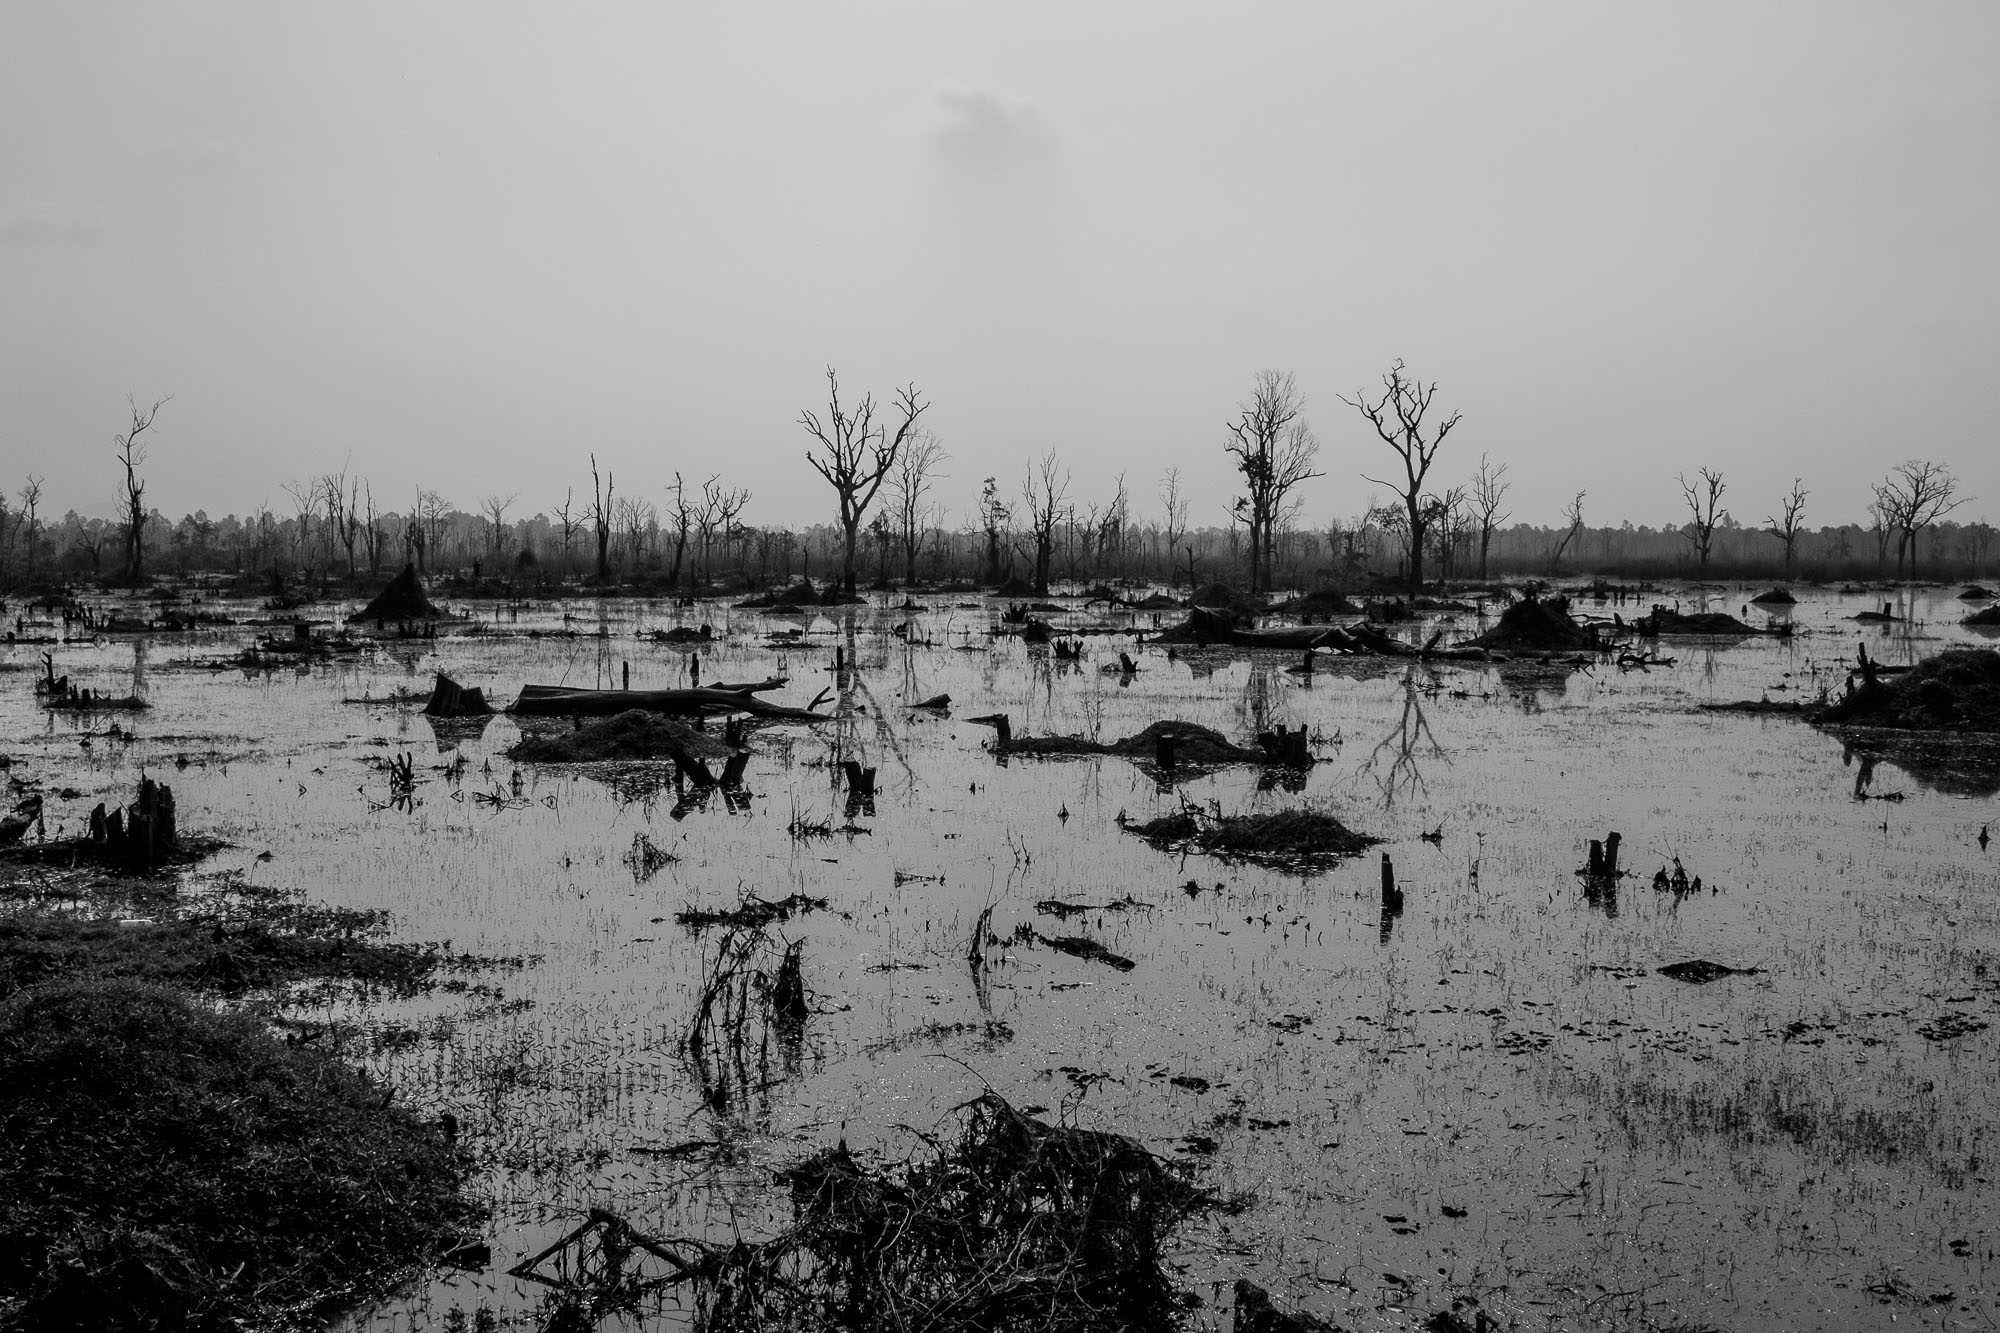 Swamp with dead trees